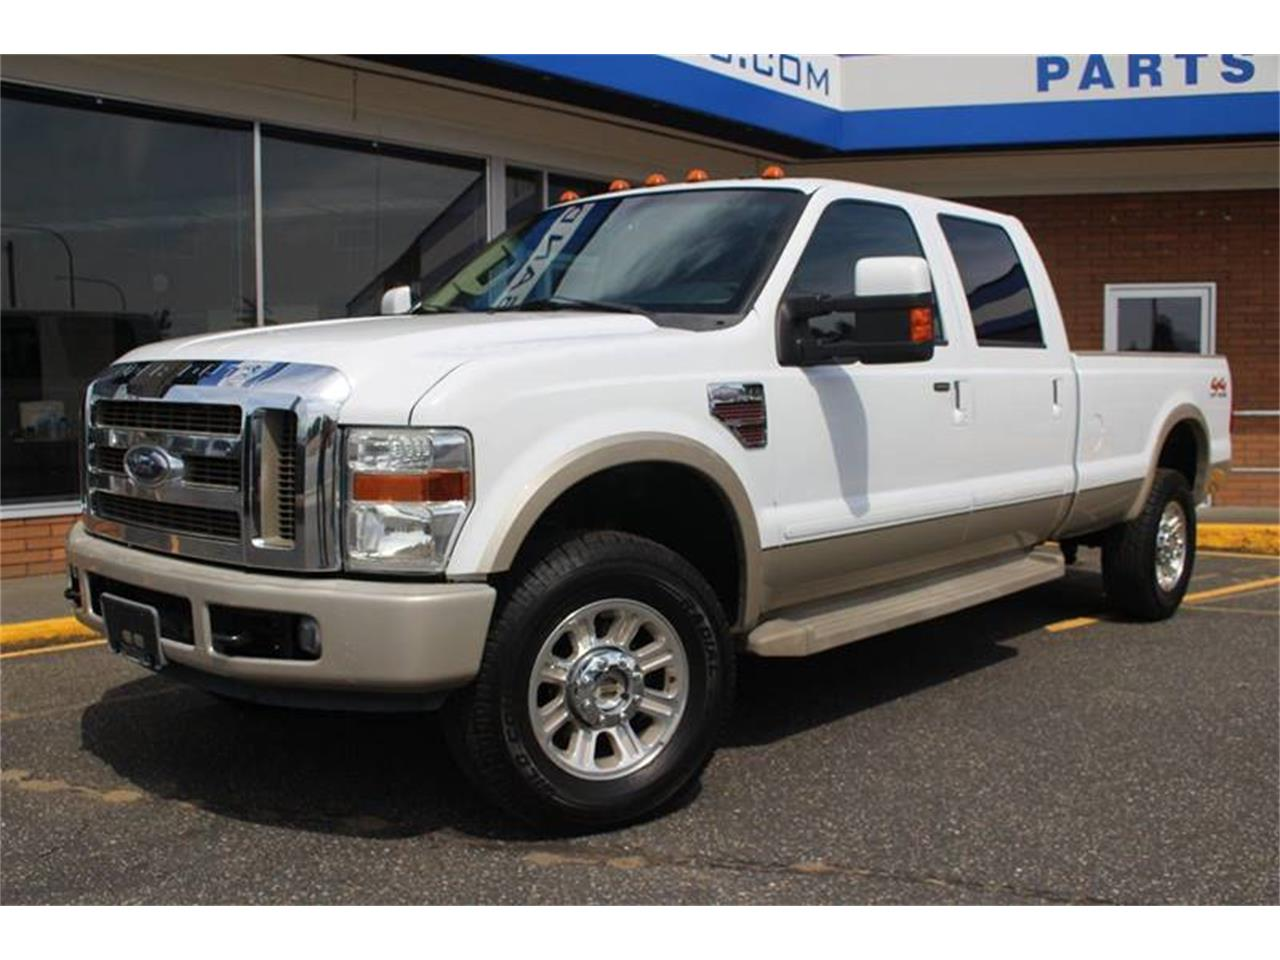 Large picture of 08 ford f350 located in lynden washington 19995 00 nqak